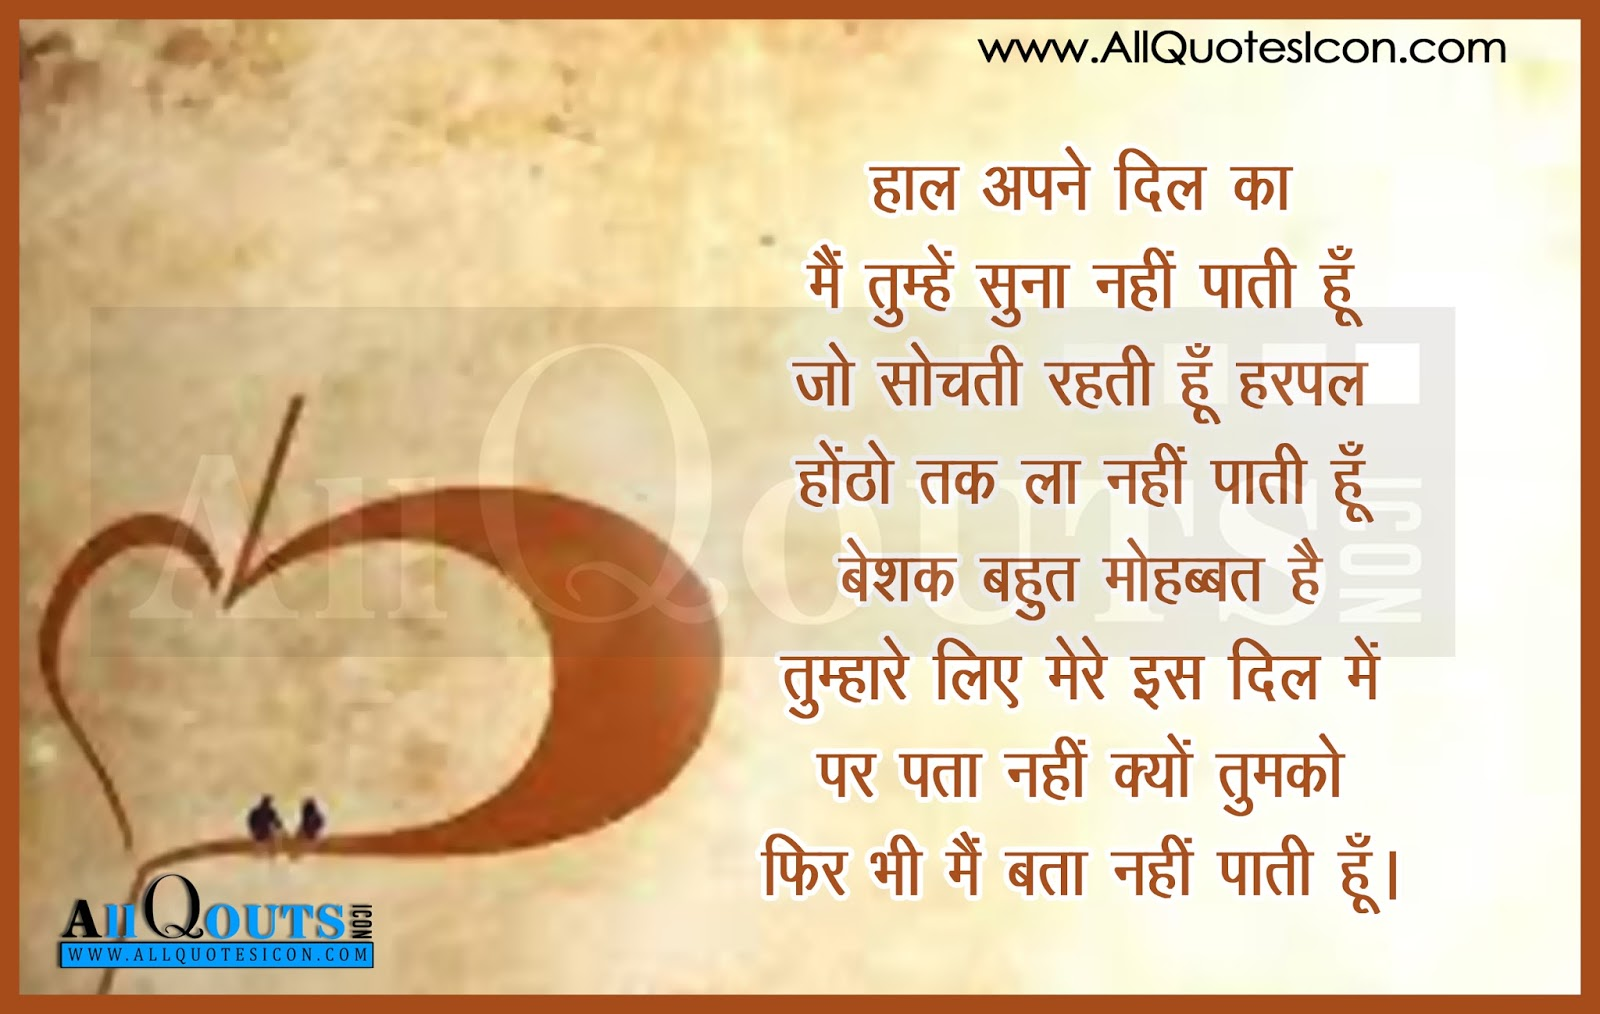 Best Love Quotes For Him In Hindi : hindi love quotes and thoughts best hindi love quotes top hindi love ...